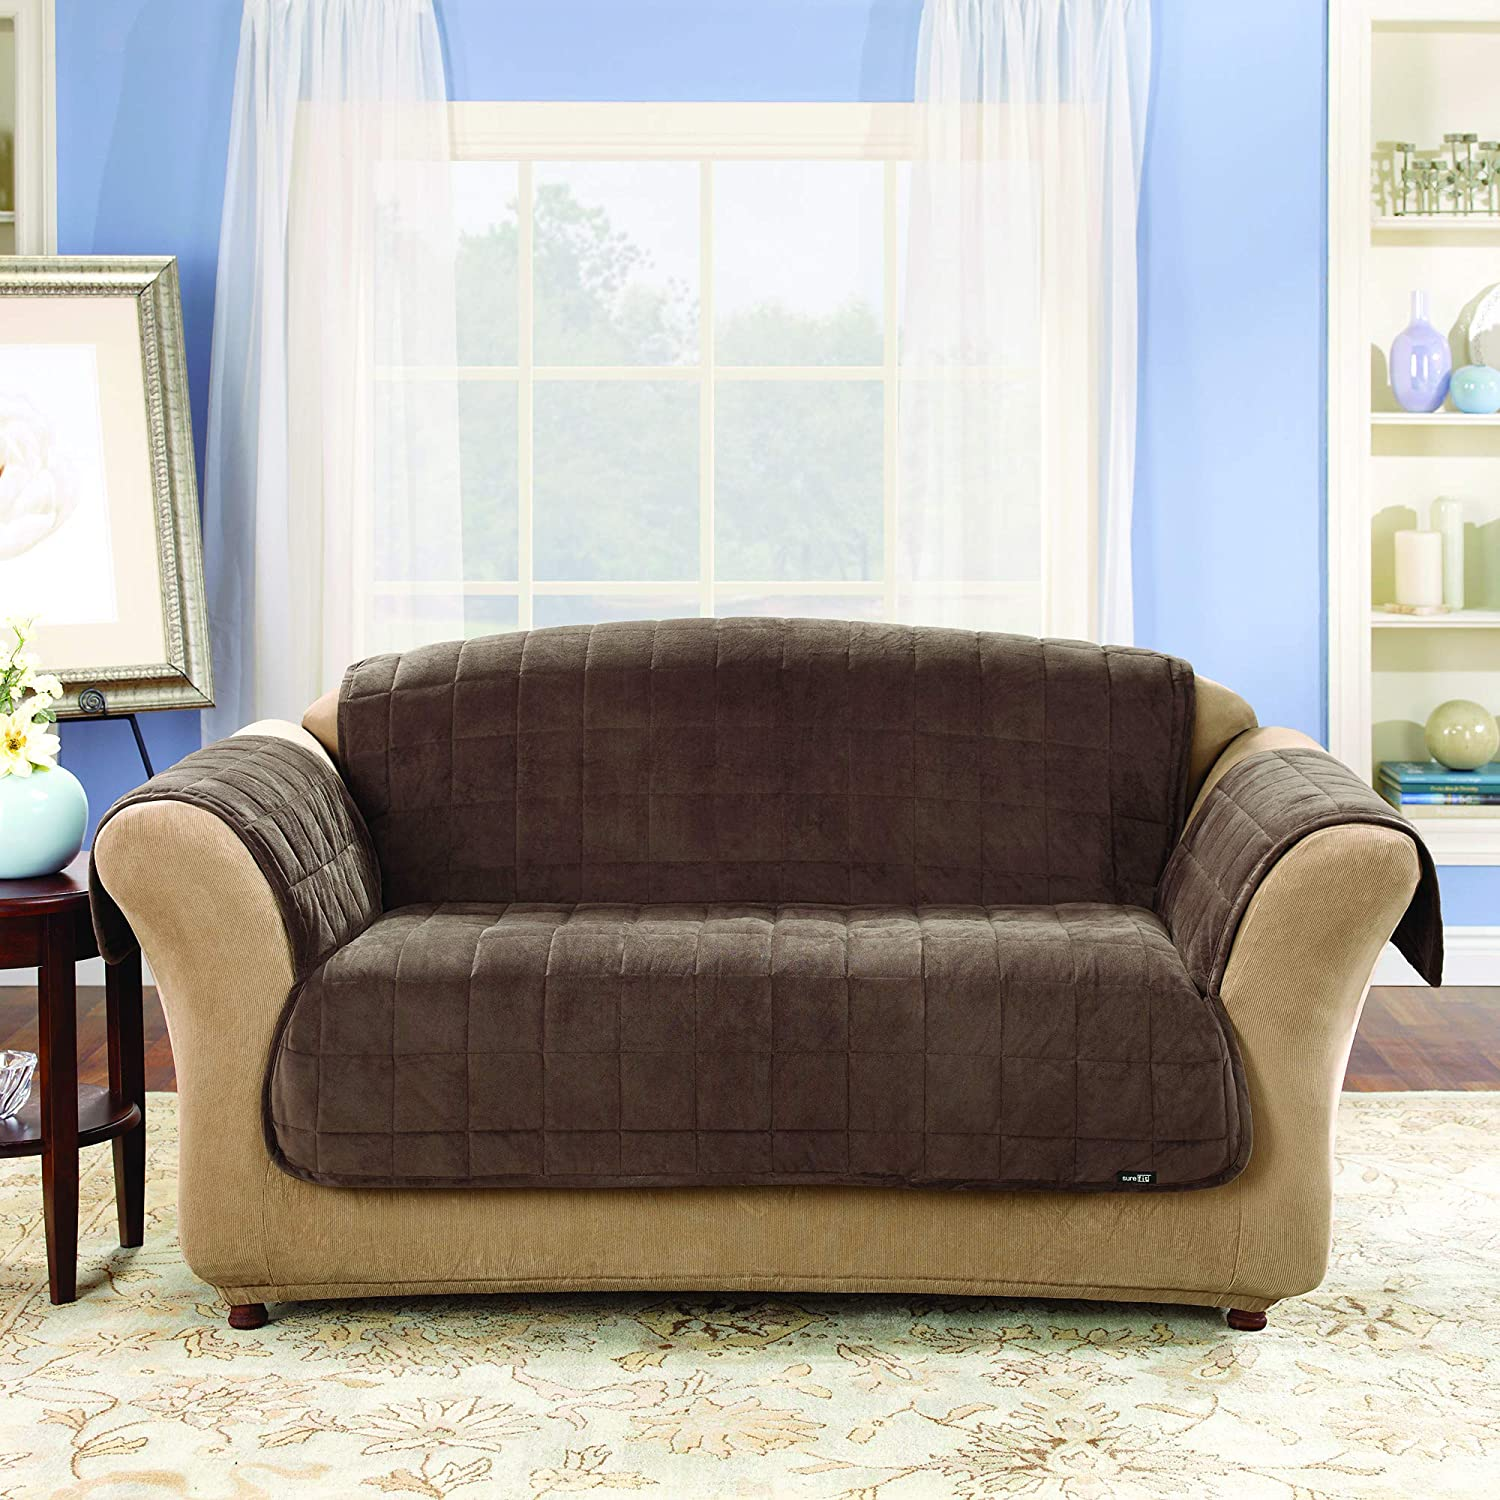 Prime Surefit Deluxe Loveseat Furniture Cover With Arms Chocolate Squirreltailoven Fun Painted Chair Ideas Images Squirreltailovenorg